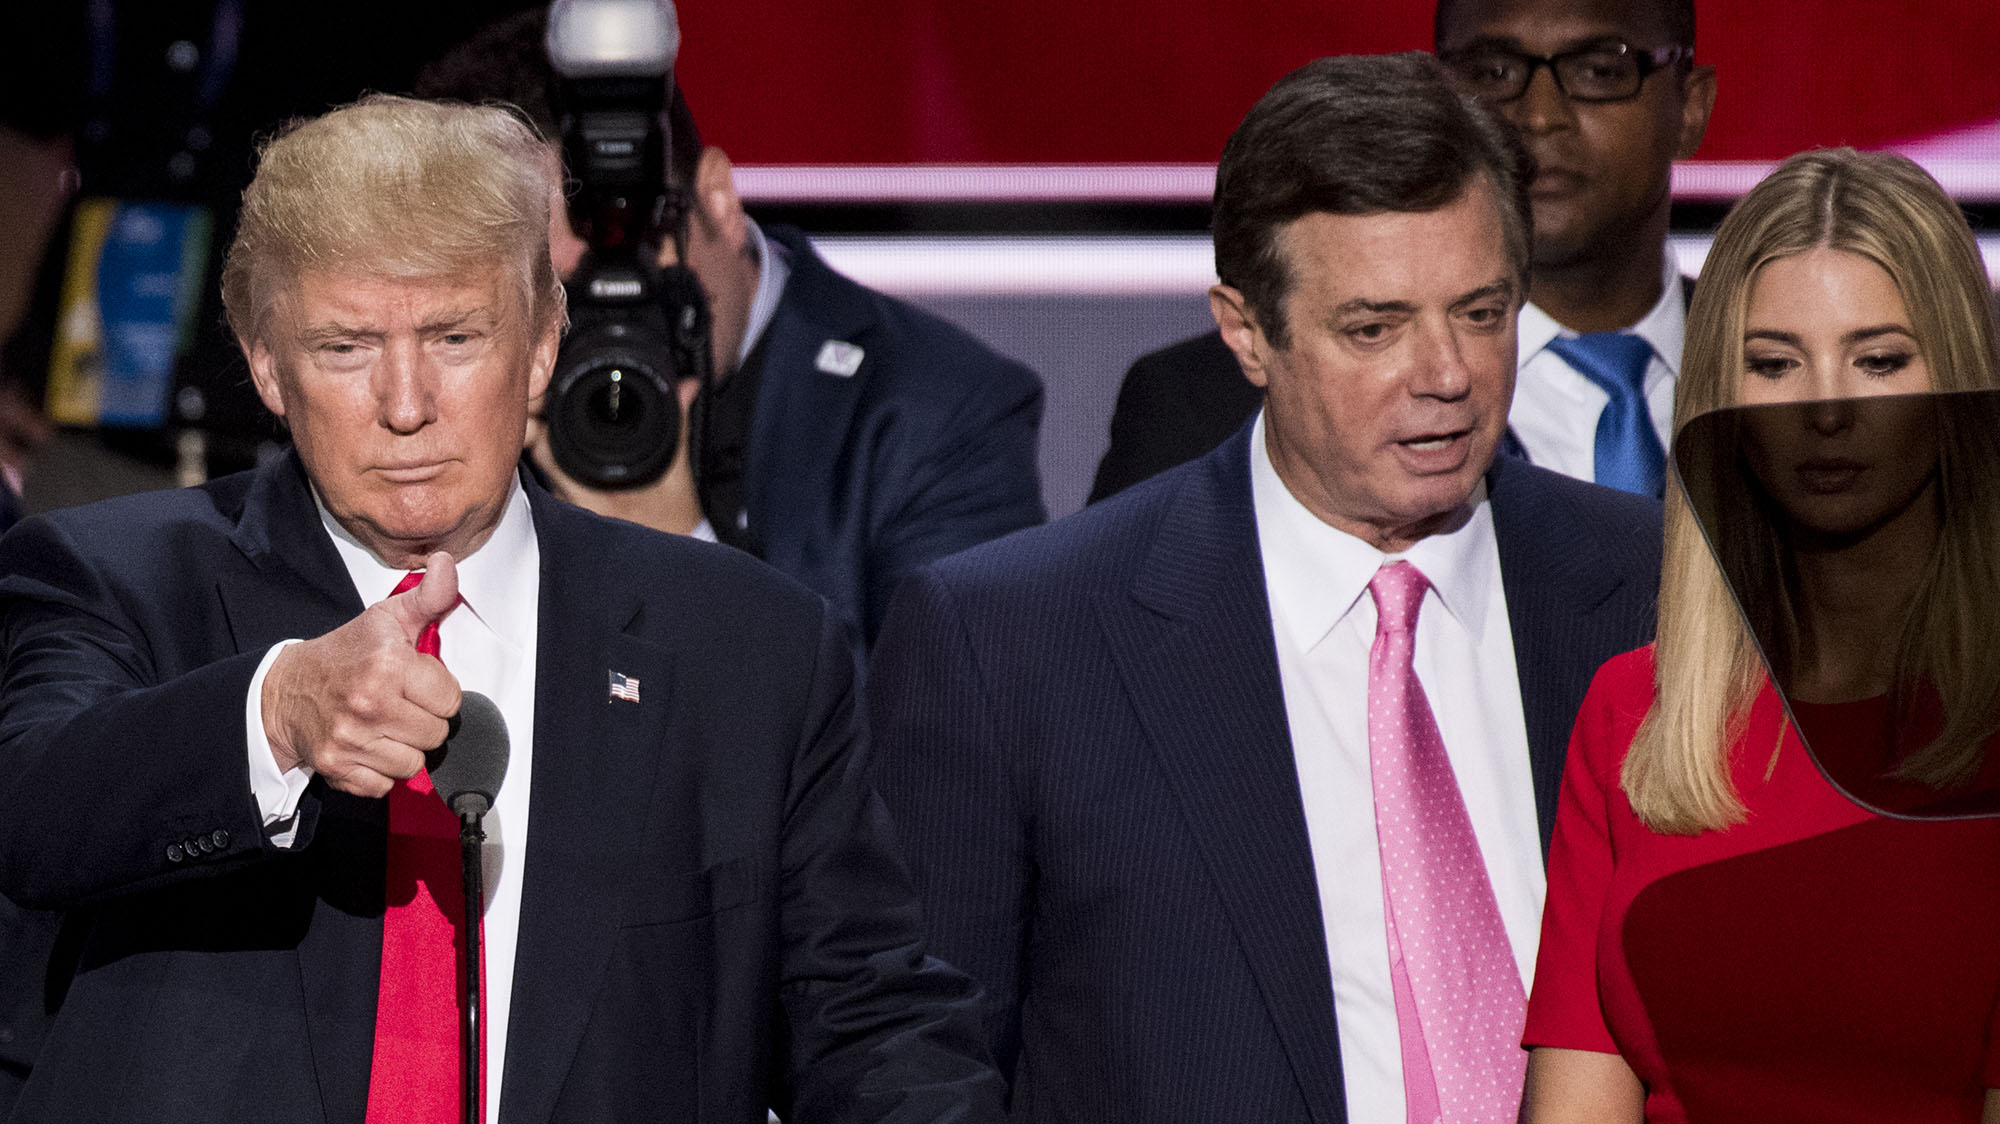 Paul Manafort Story Does Not Vindicate Donald Trump's 'Wiretap' Claims